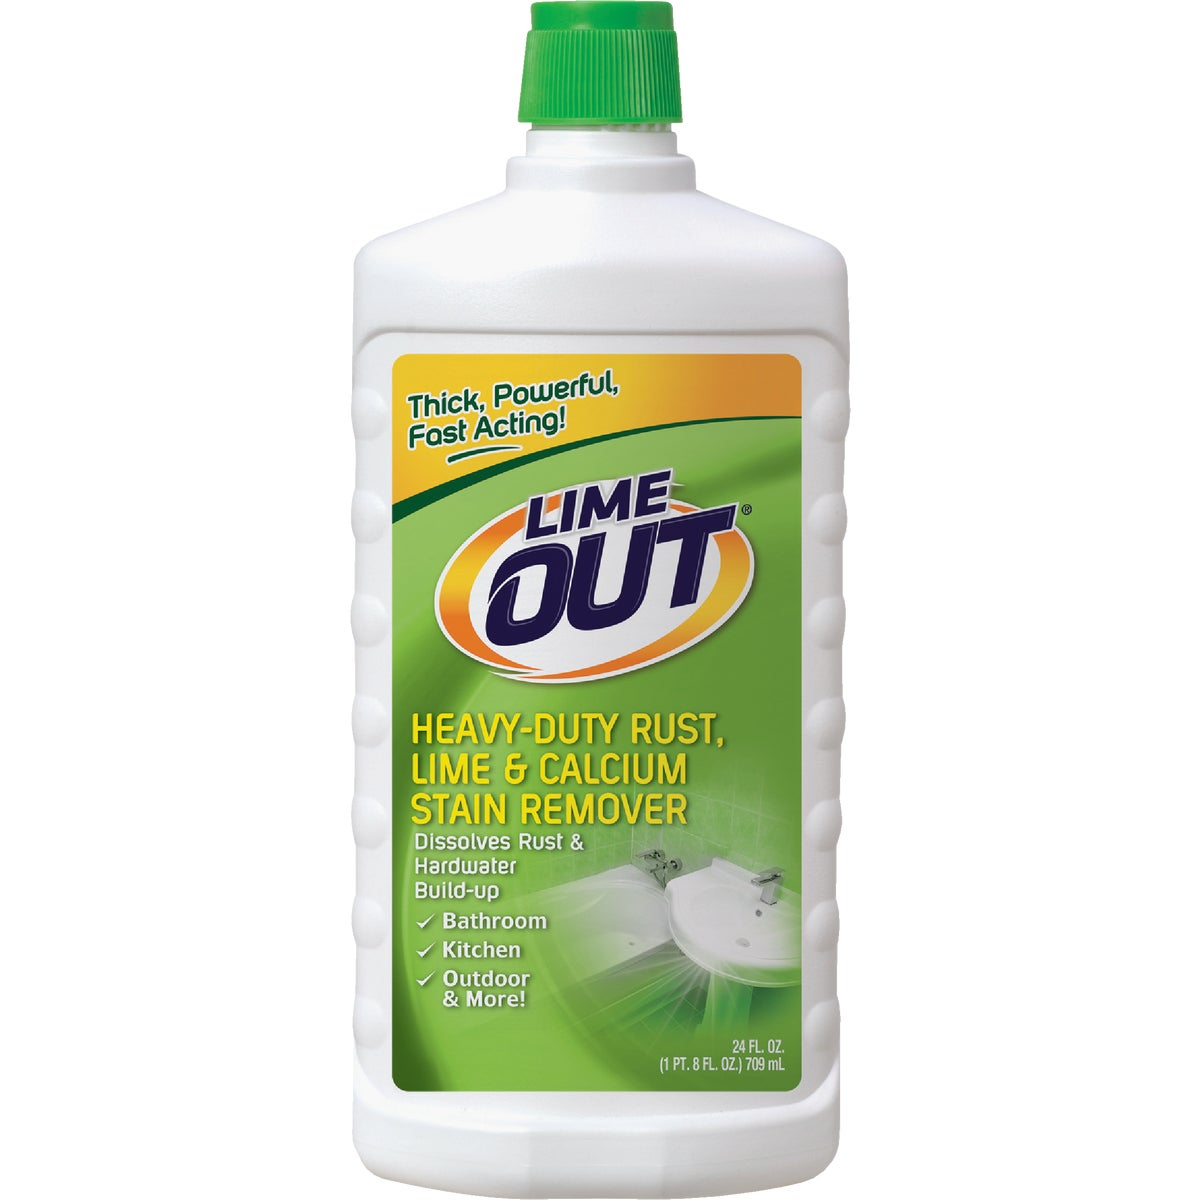 24Oz Lime Out